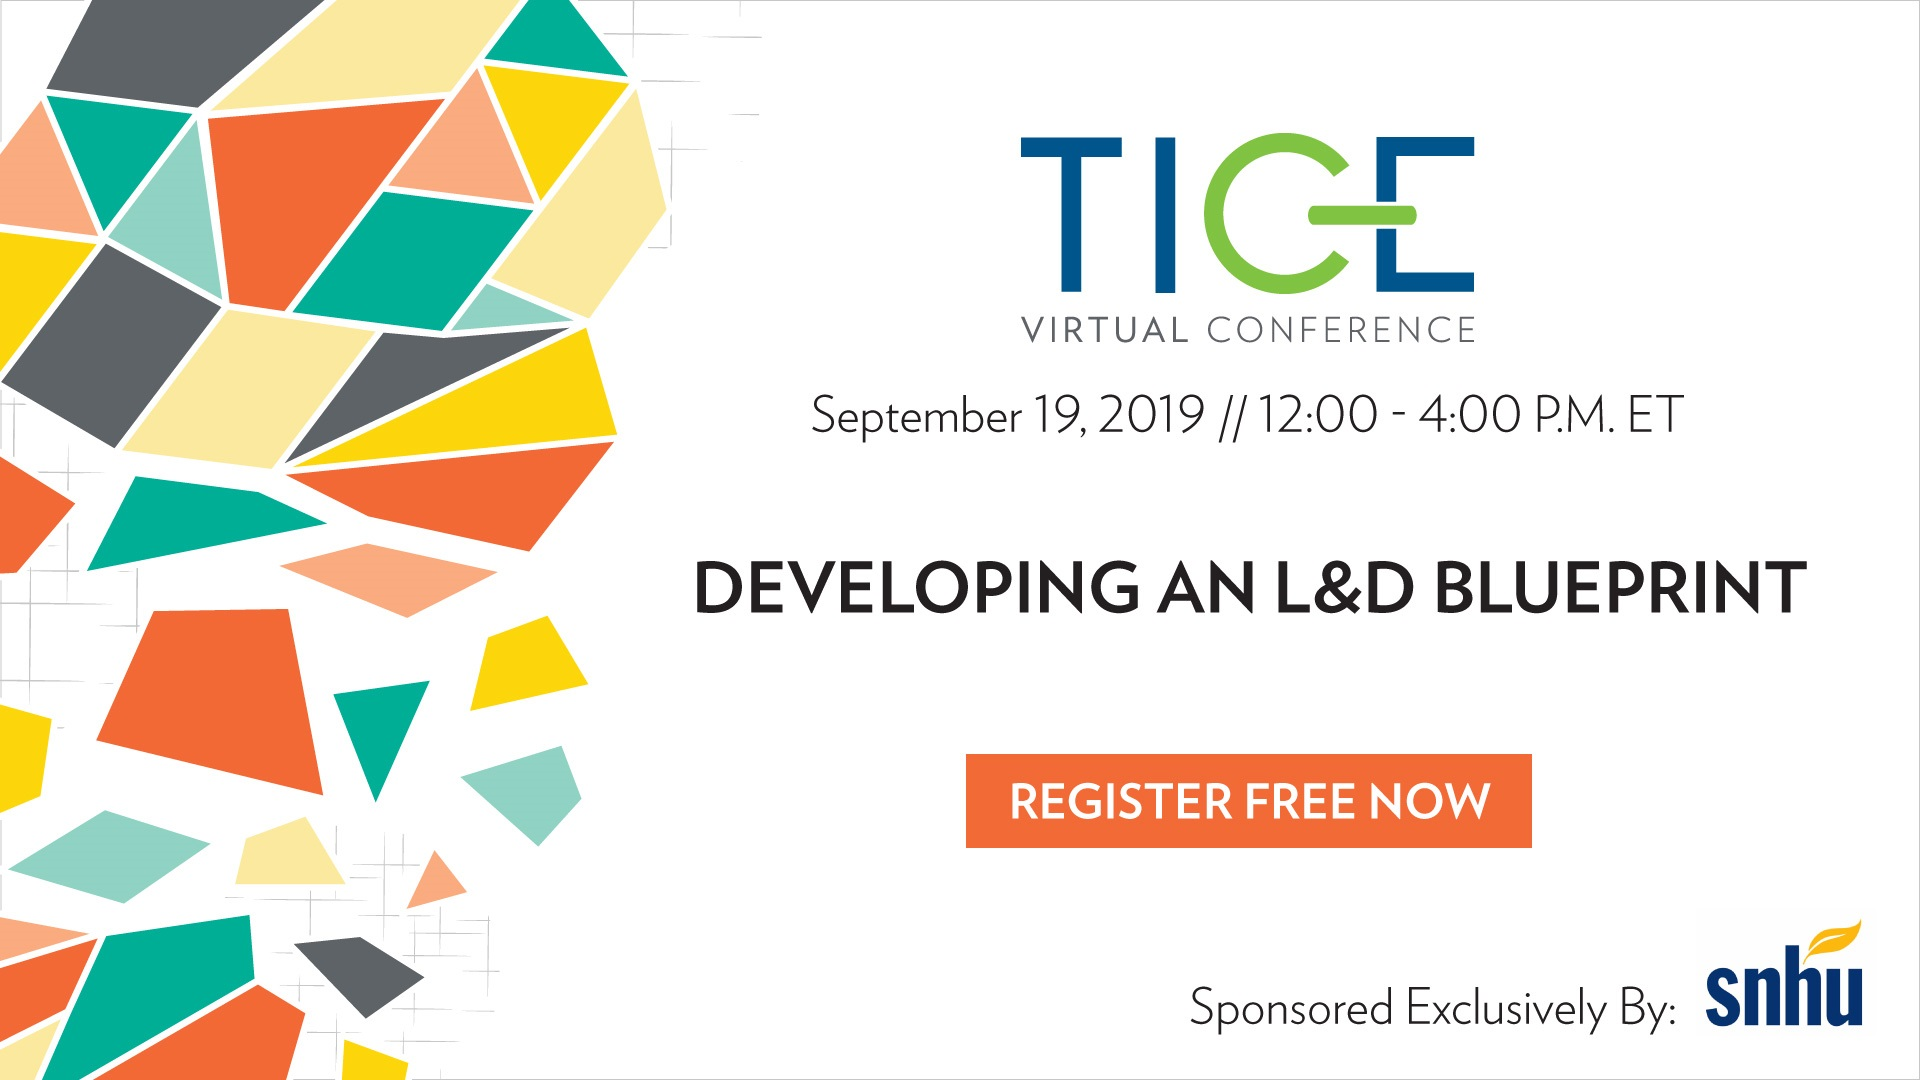 TICE Virtual Conference: Developing an L&D Blueprint